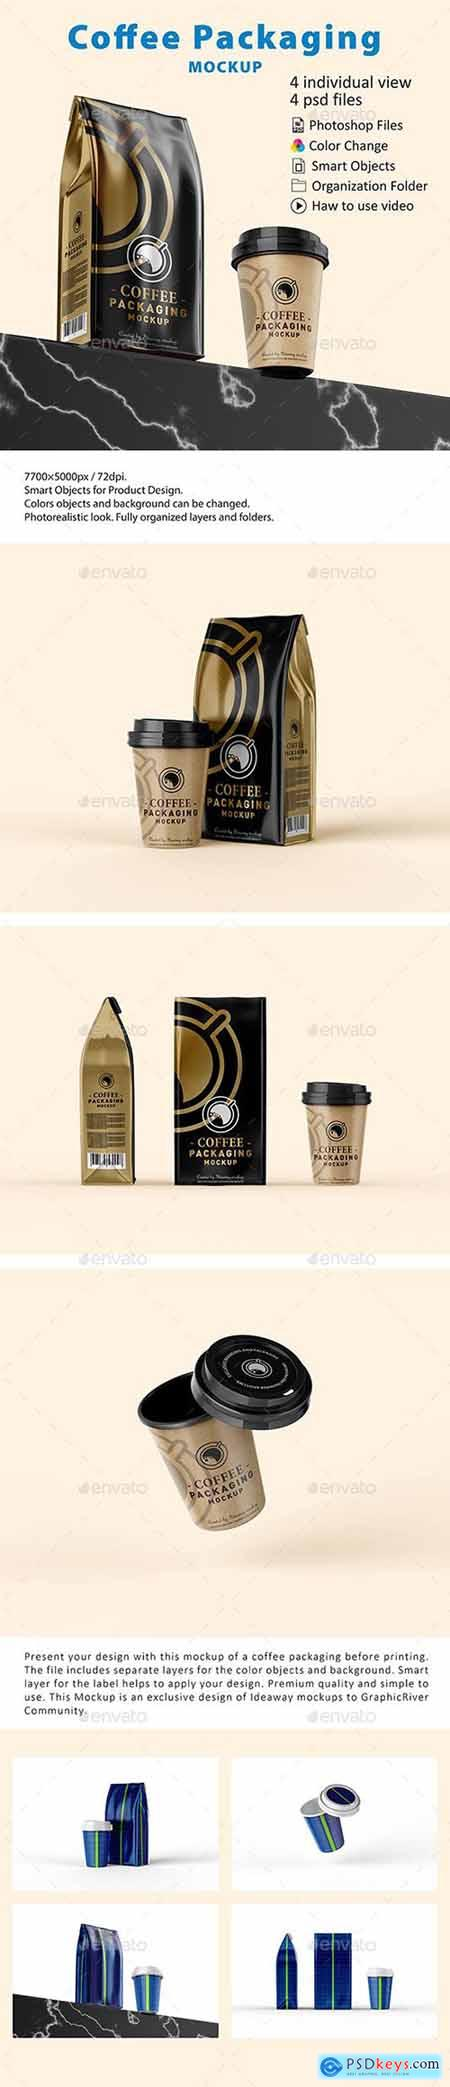 Graphicriver Coffee Packaging Mockup